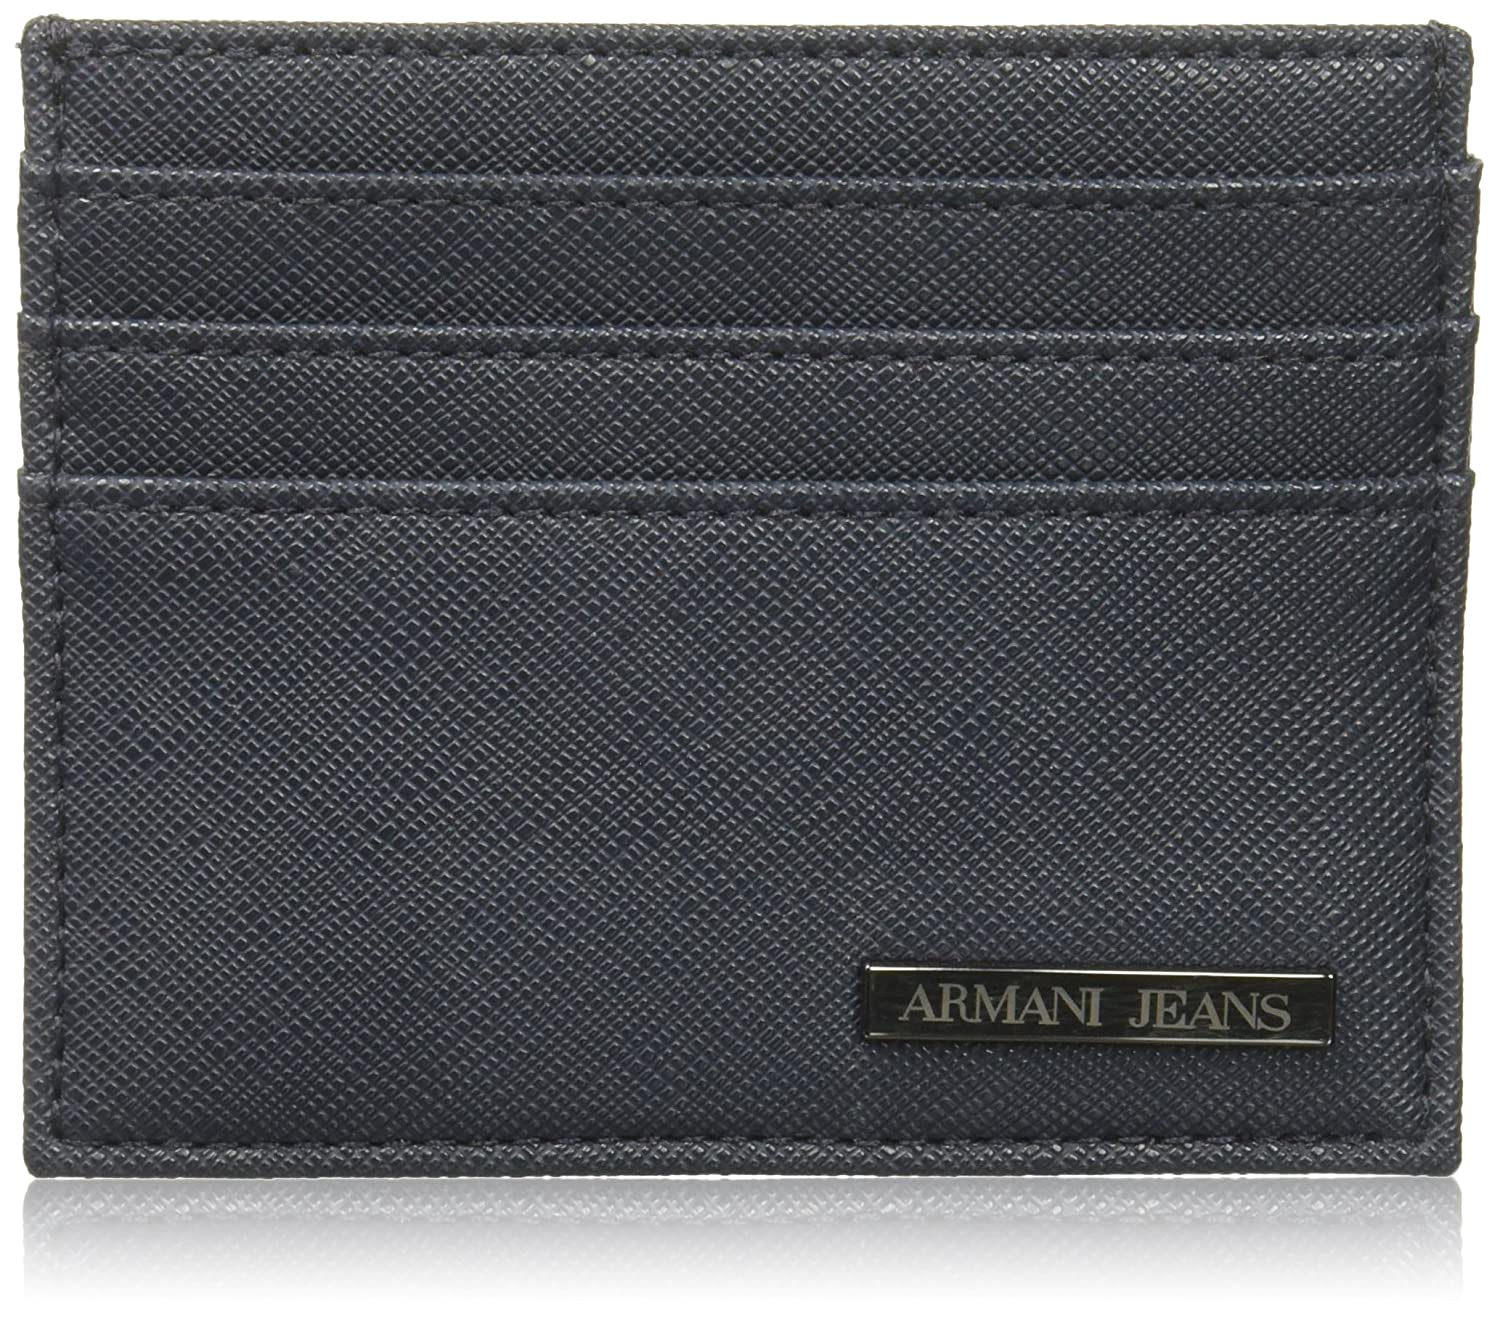 Armani Jeans Men's Saffiano Embossed Credit Card Holder Black One Size 938548CC9910020